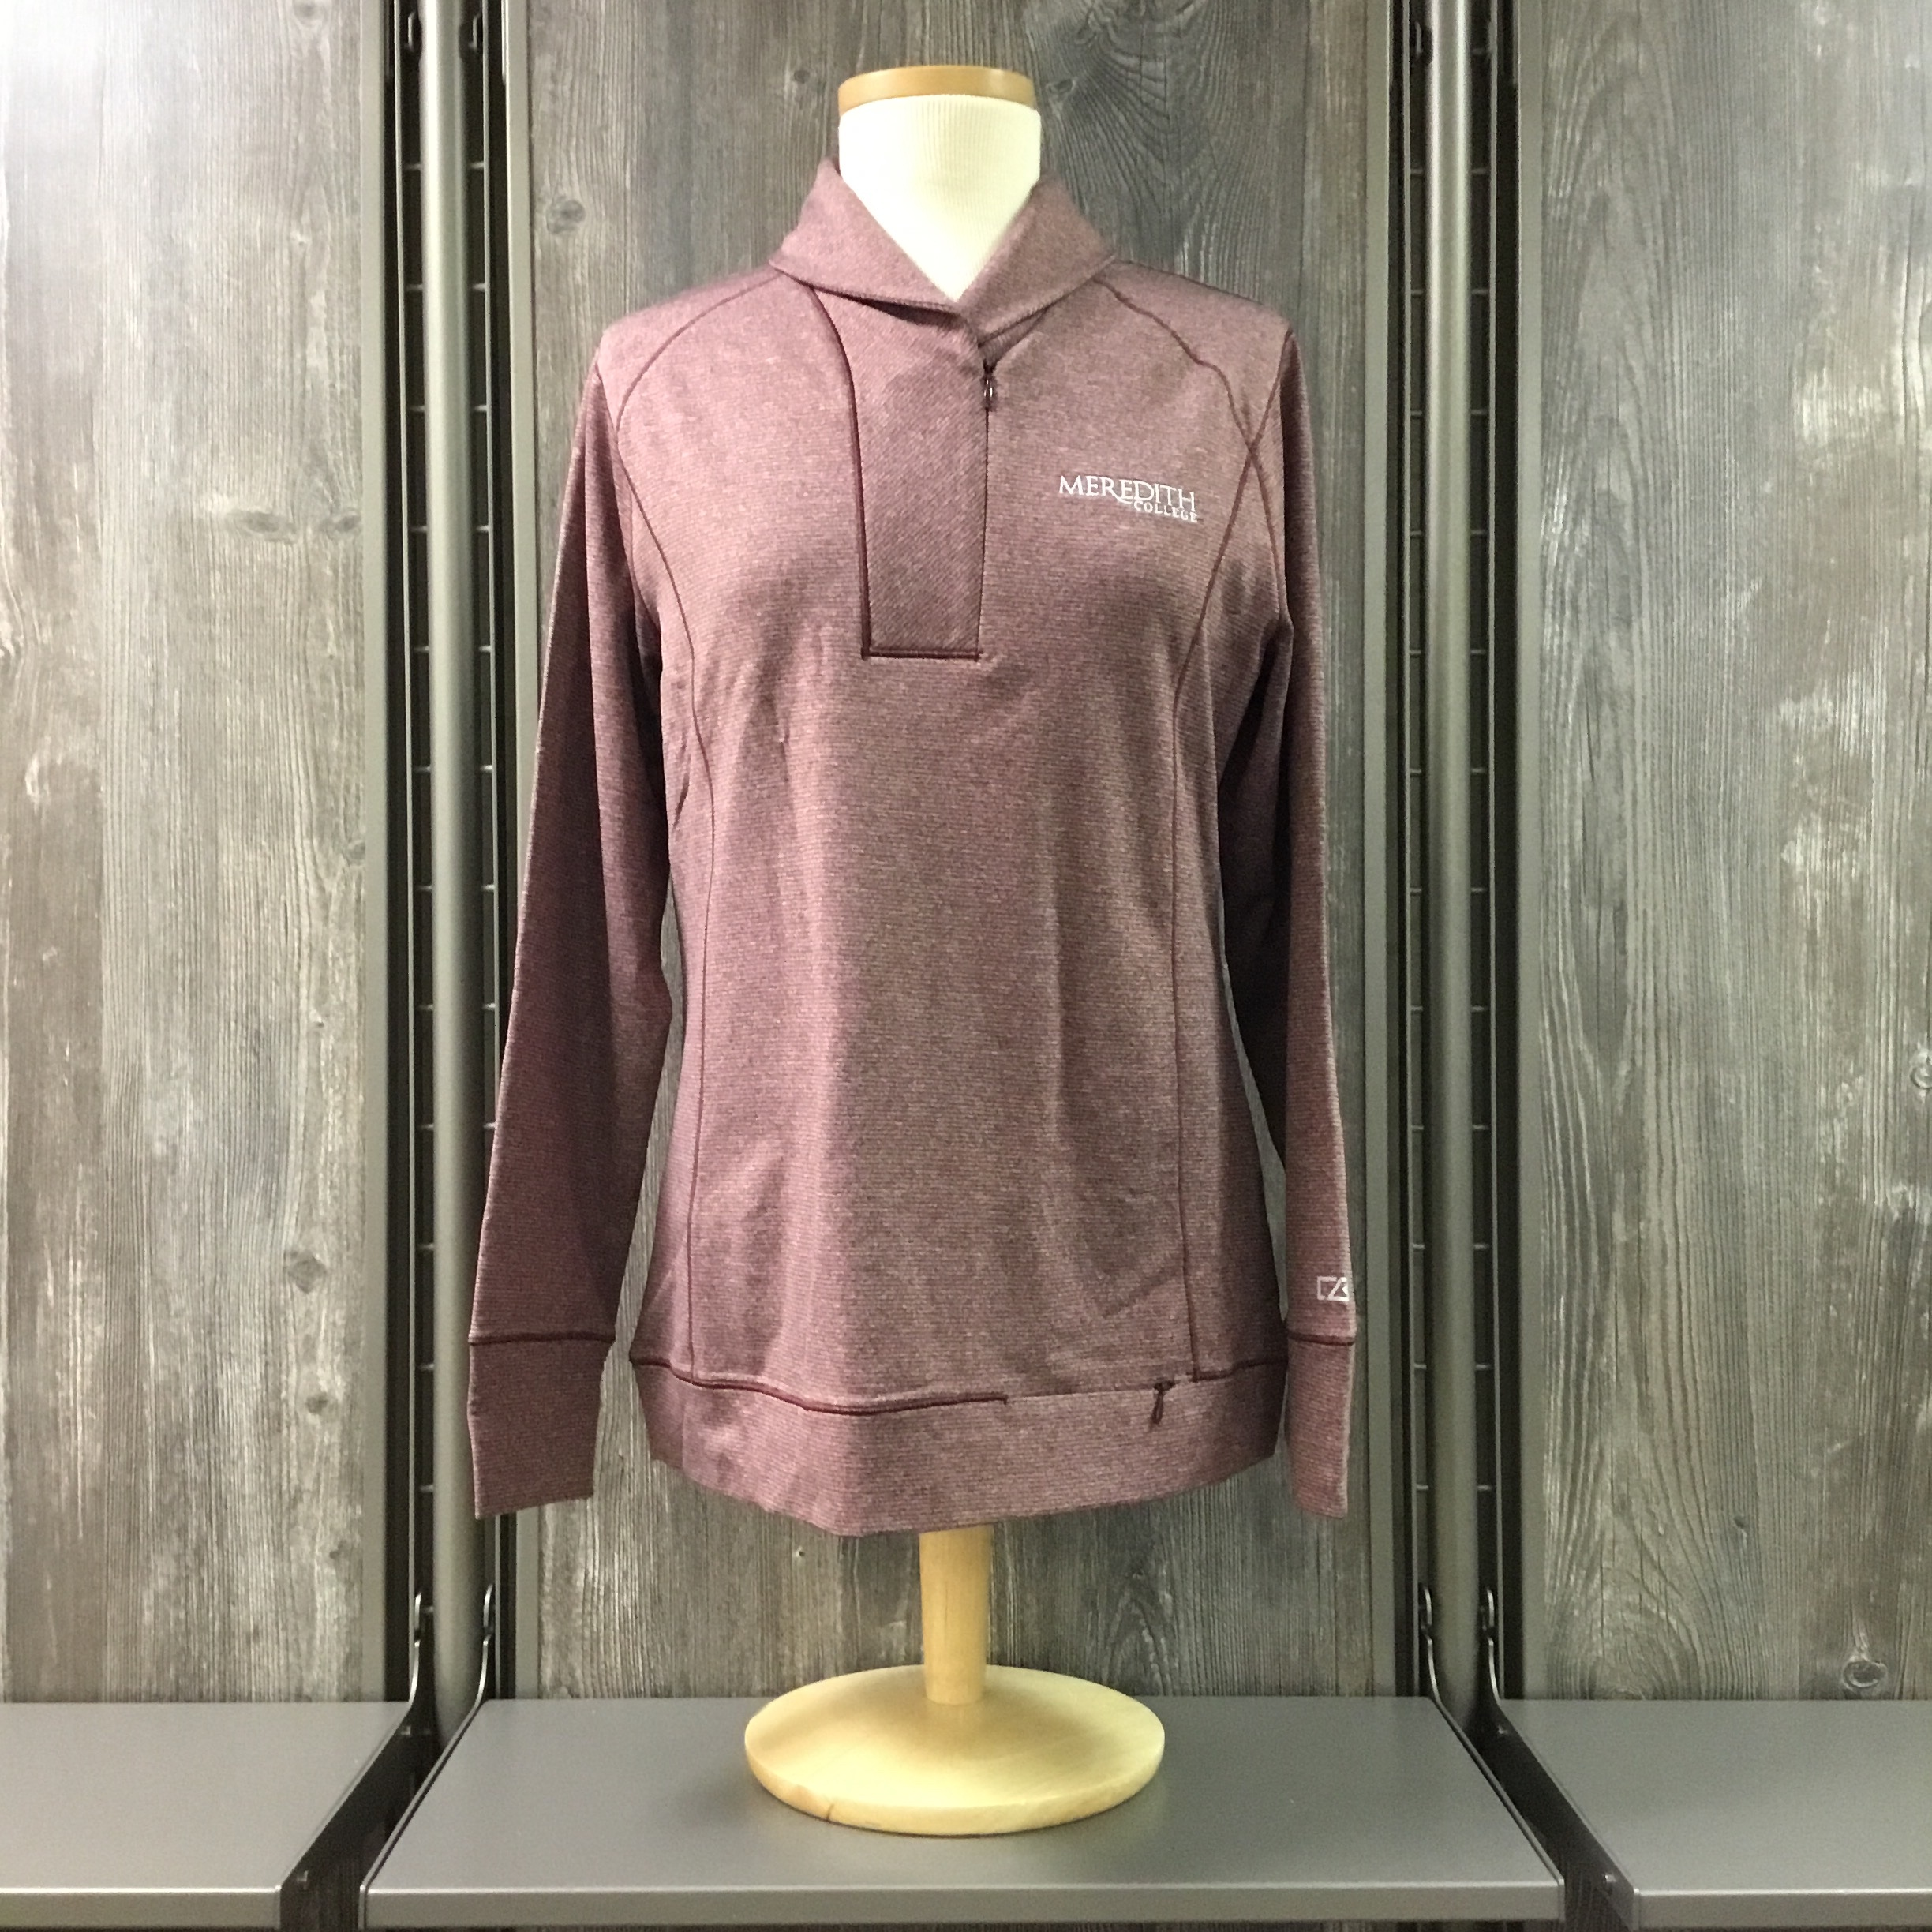 Image for the Women's Shoreline Half-zip Pullover Cutter & Buck product